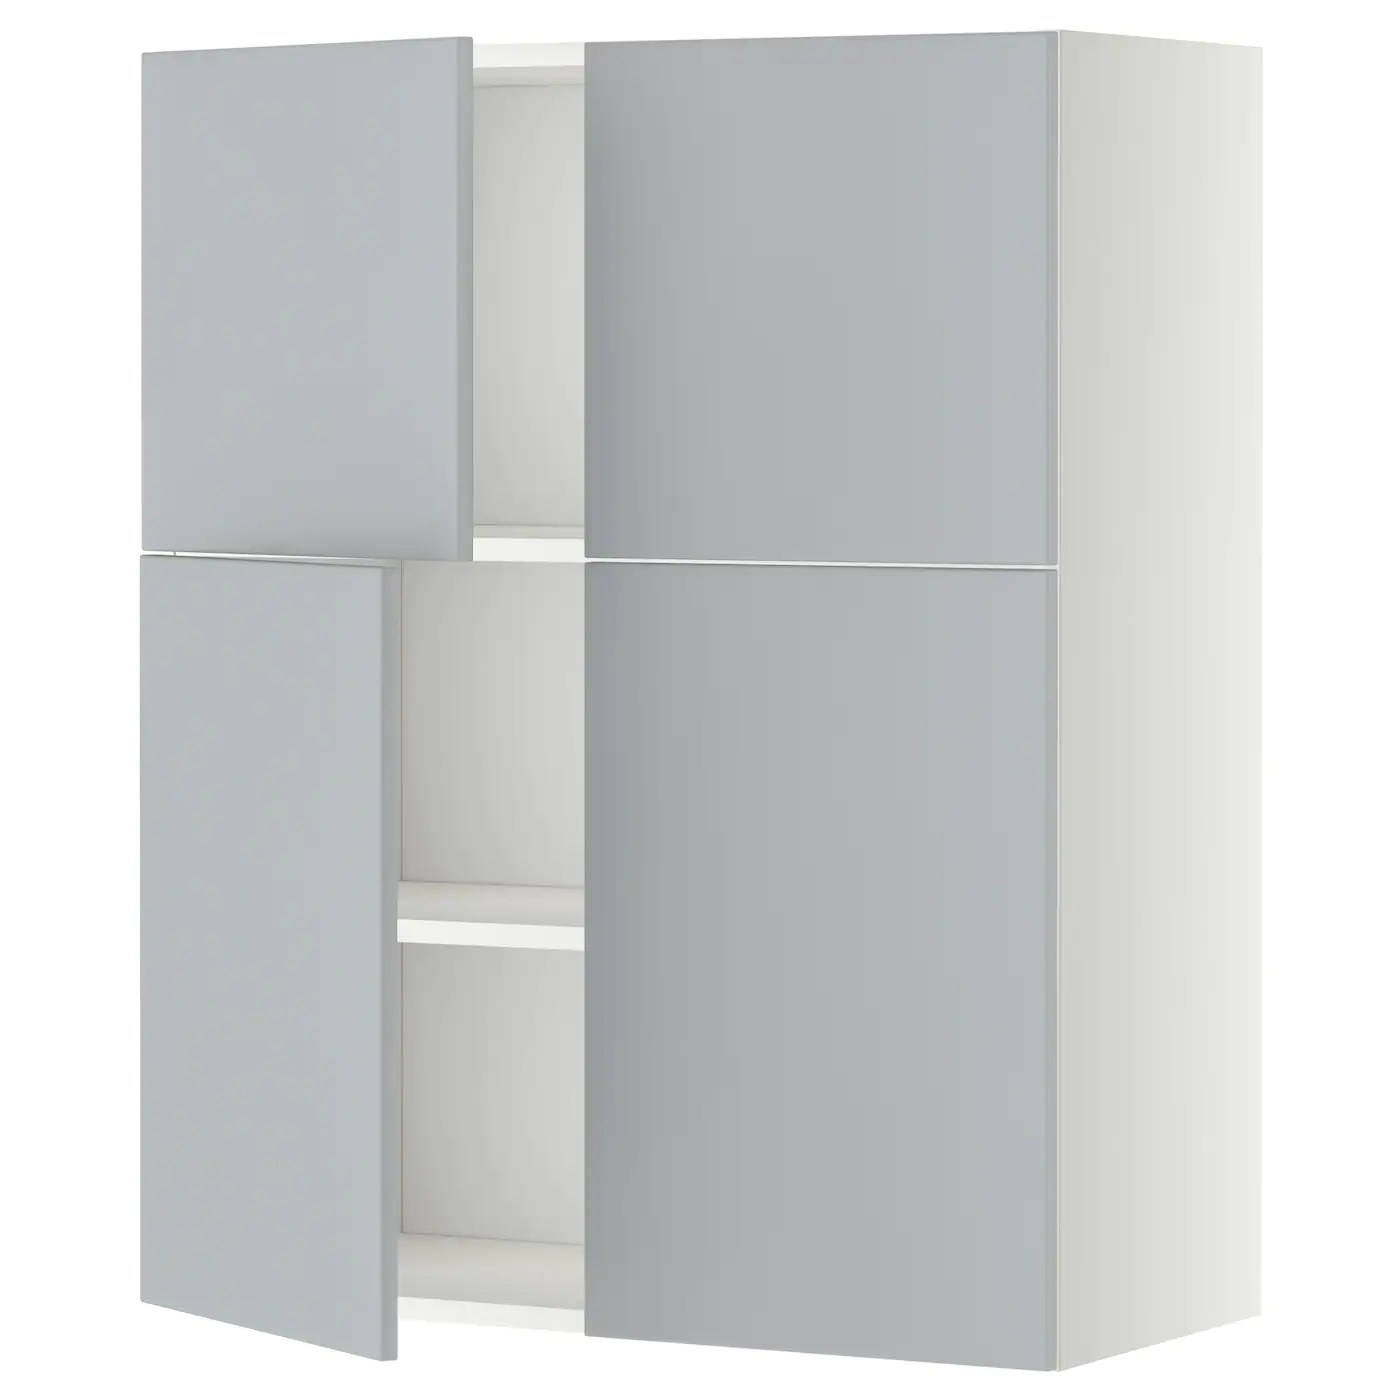 ikea kitchen cabinet doors aluminum chairs metod wall with shelves 4 white veddinge